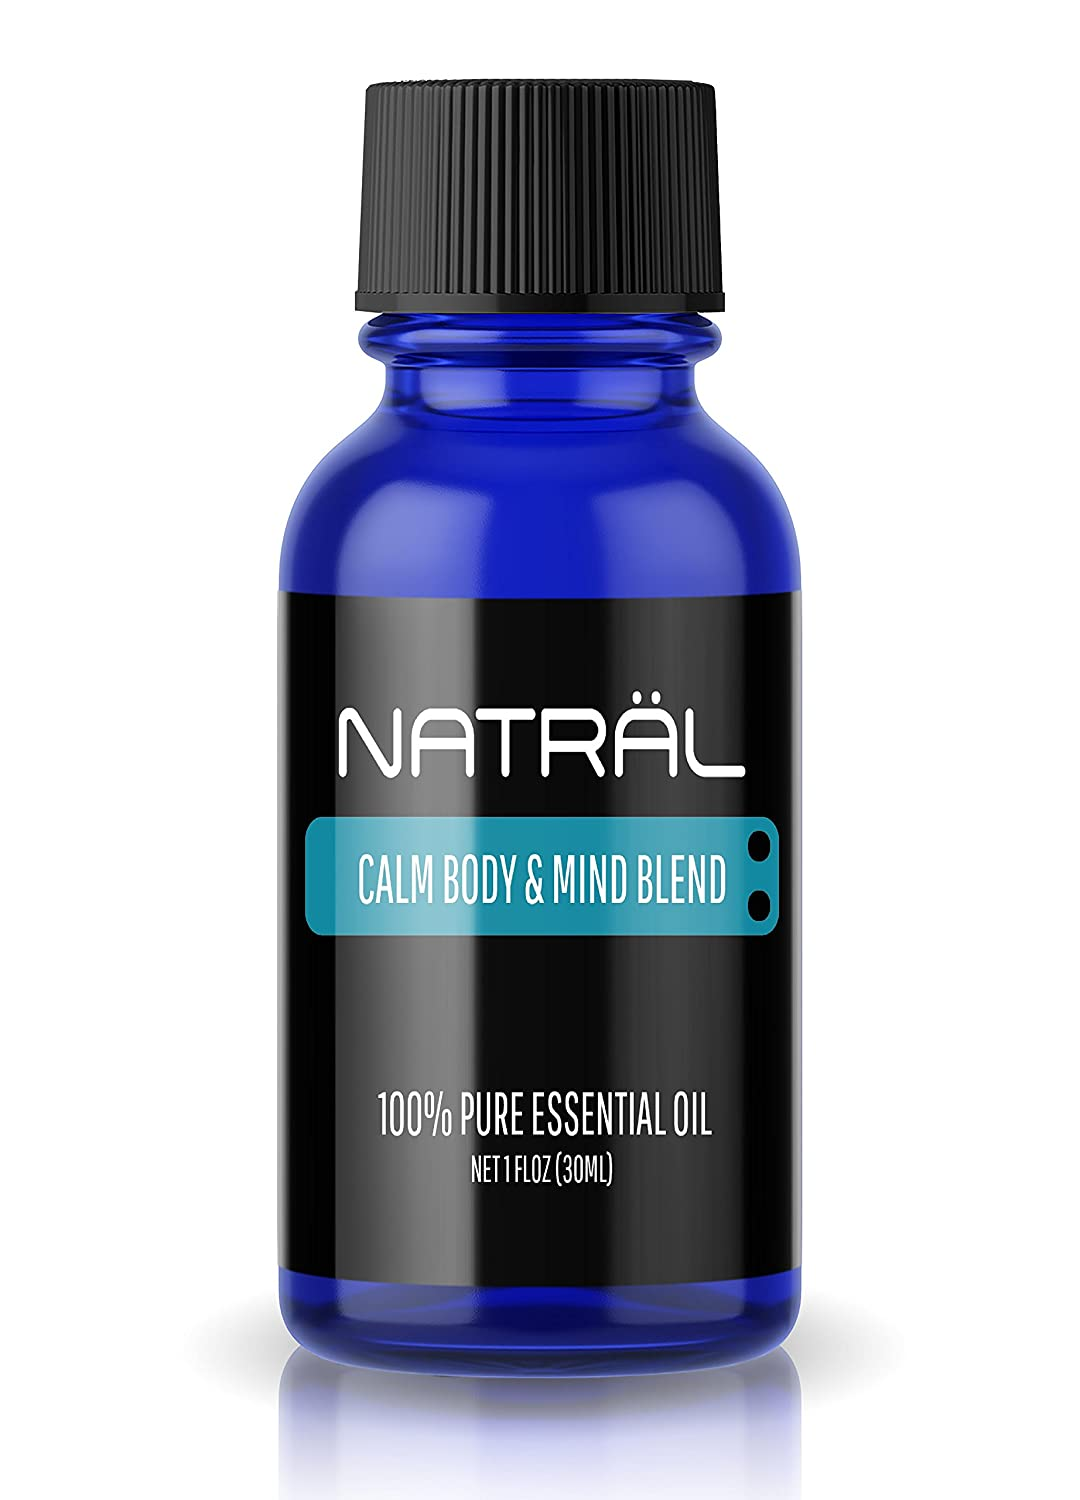 NATRÄL Calm Body & Mind Blend, 100% Pure and Natural Essential Oil, Large 1 Ounce Bottle